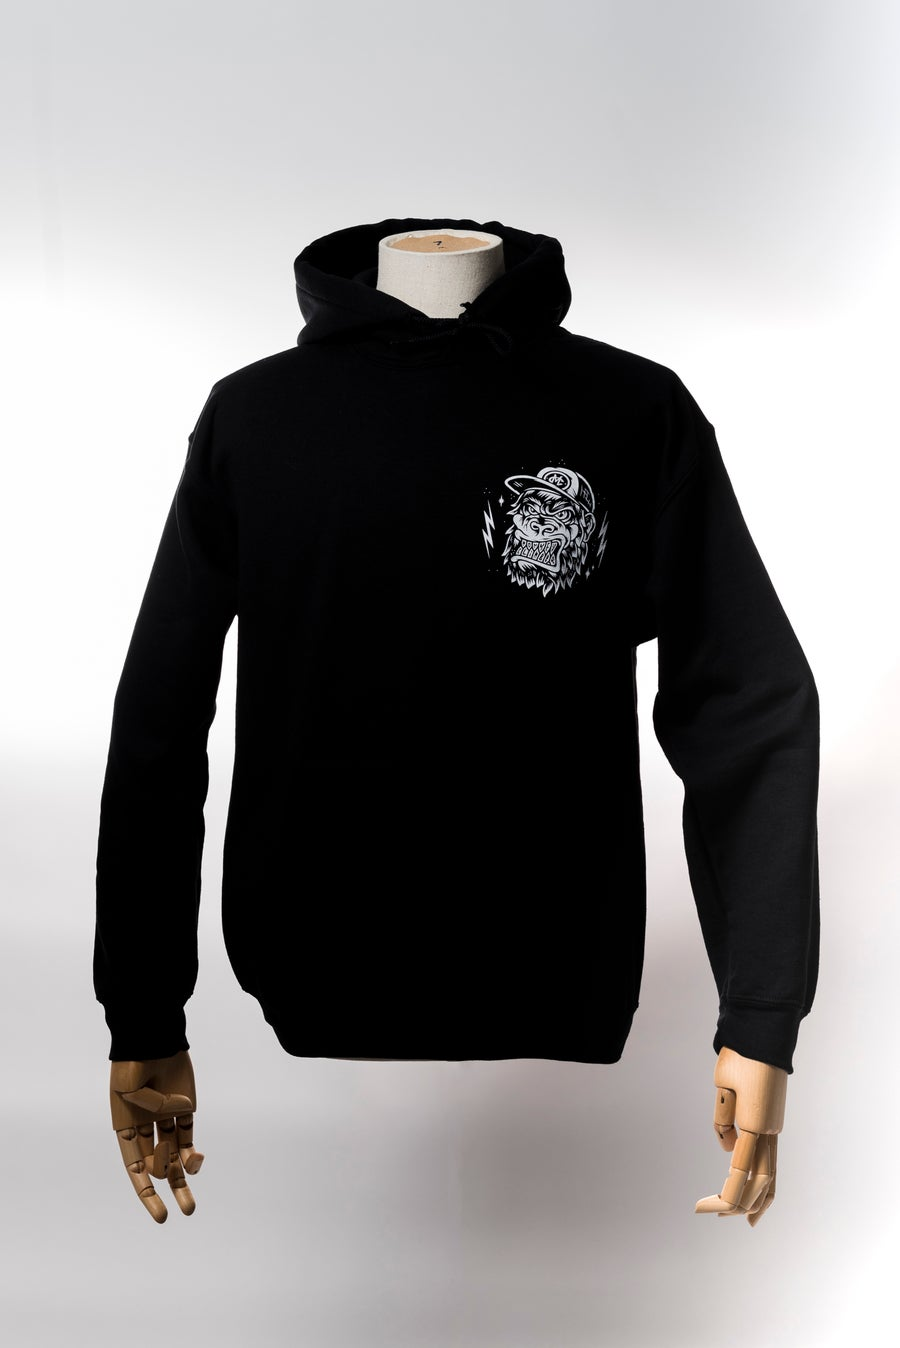 Image of Monkey Climber APE hoodie I Black - Burgundy - Heather Grey